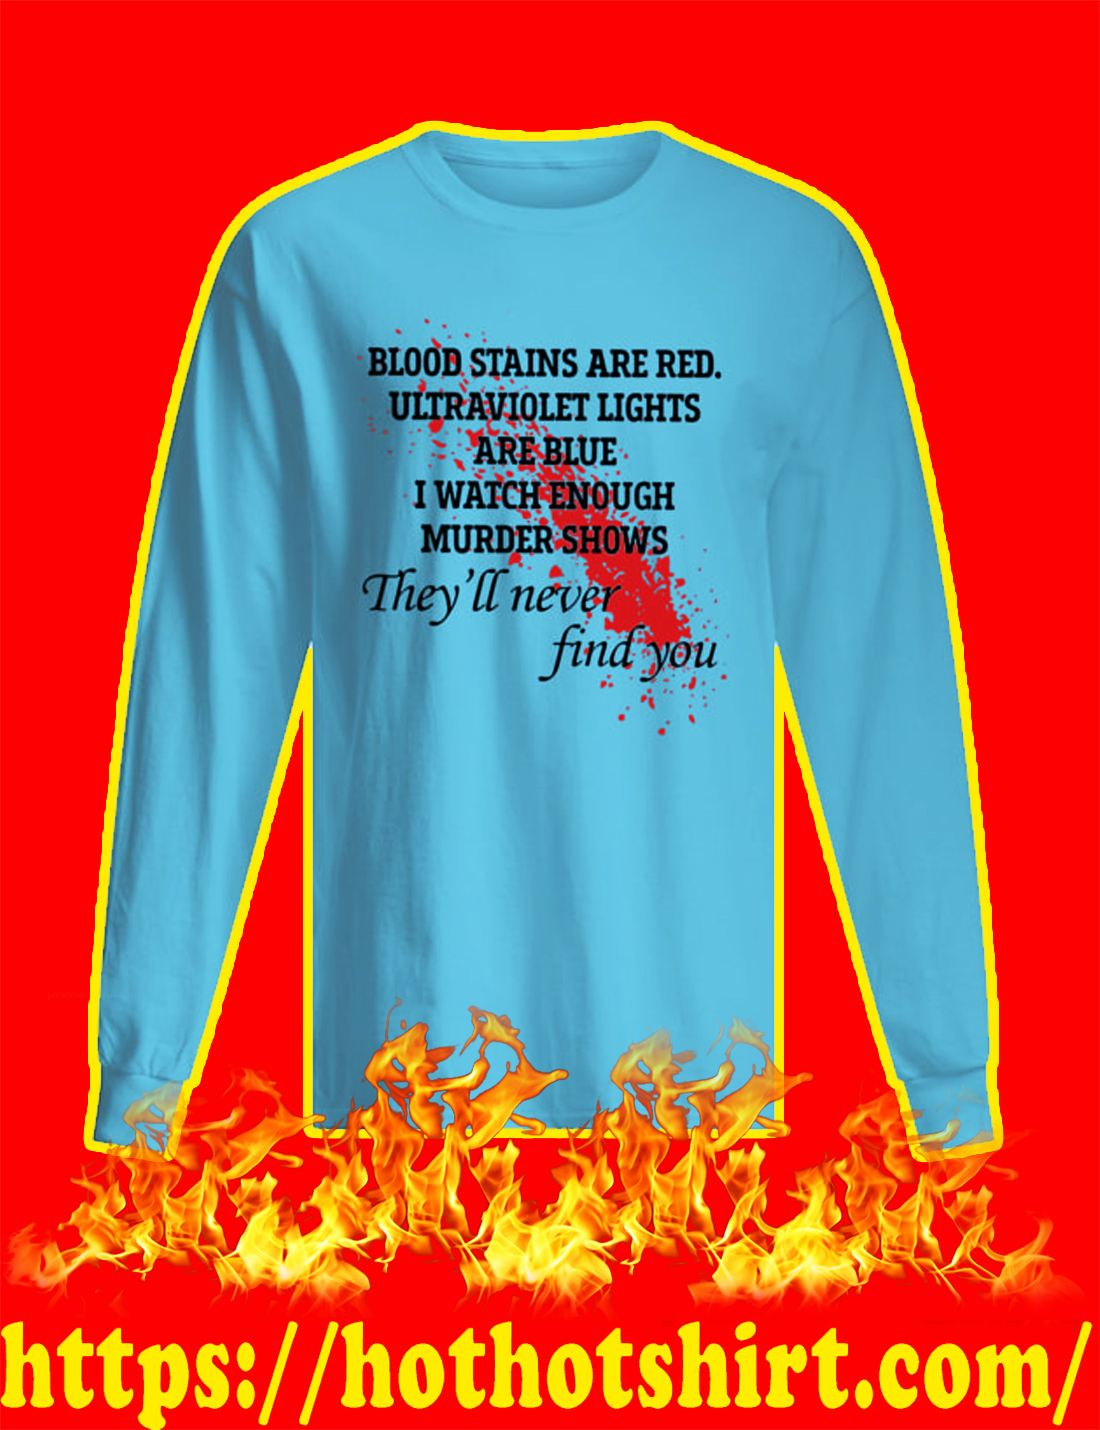 Blood Stains Are Red Ultraviolet Lights Are Blue long sleeve tee